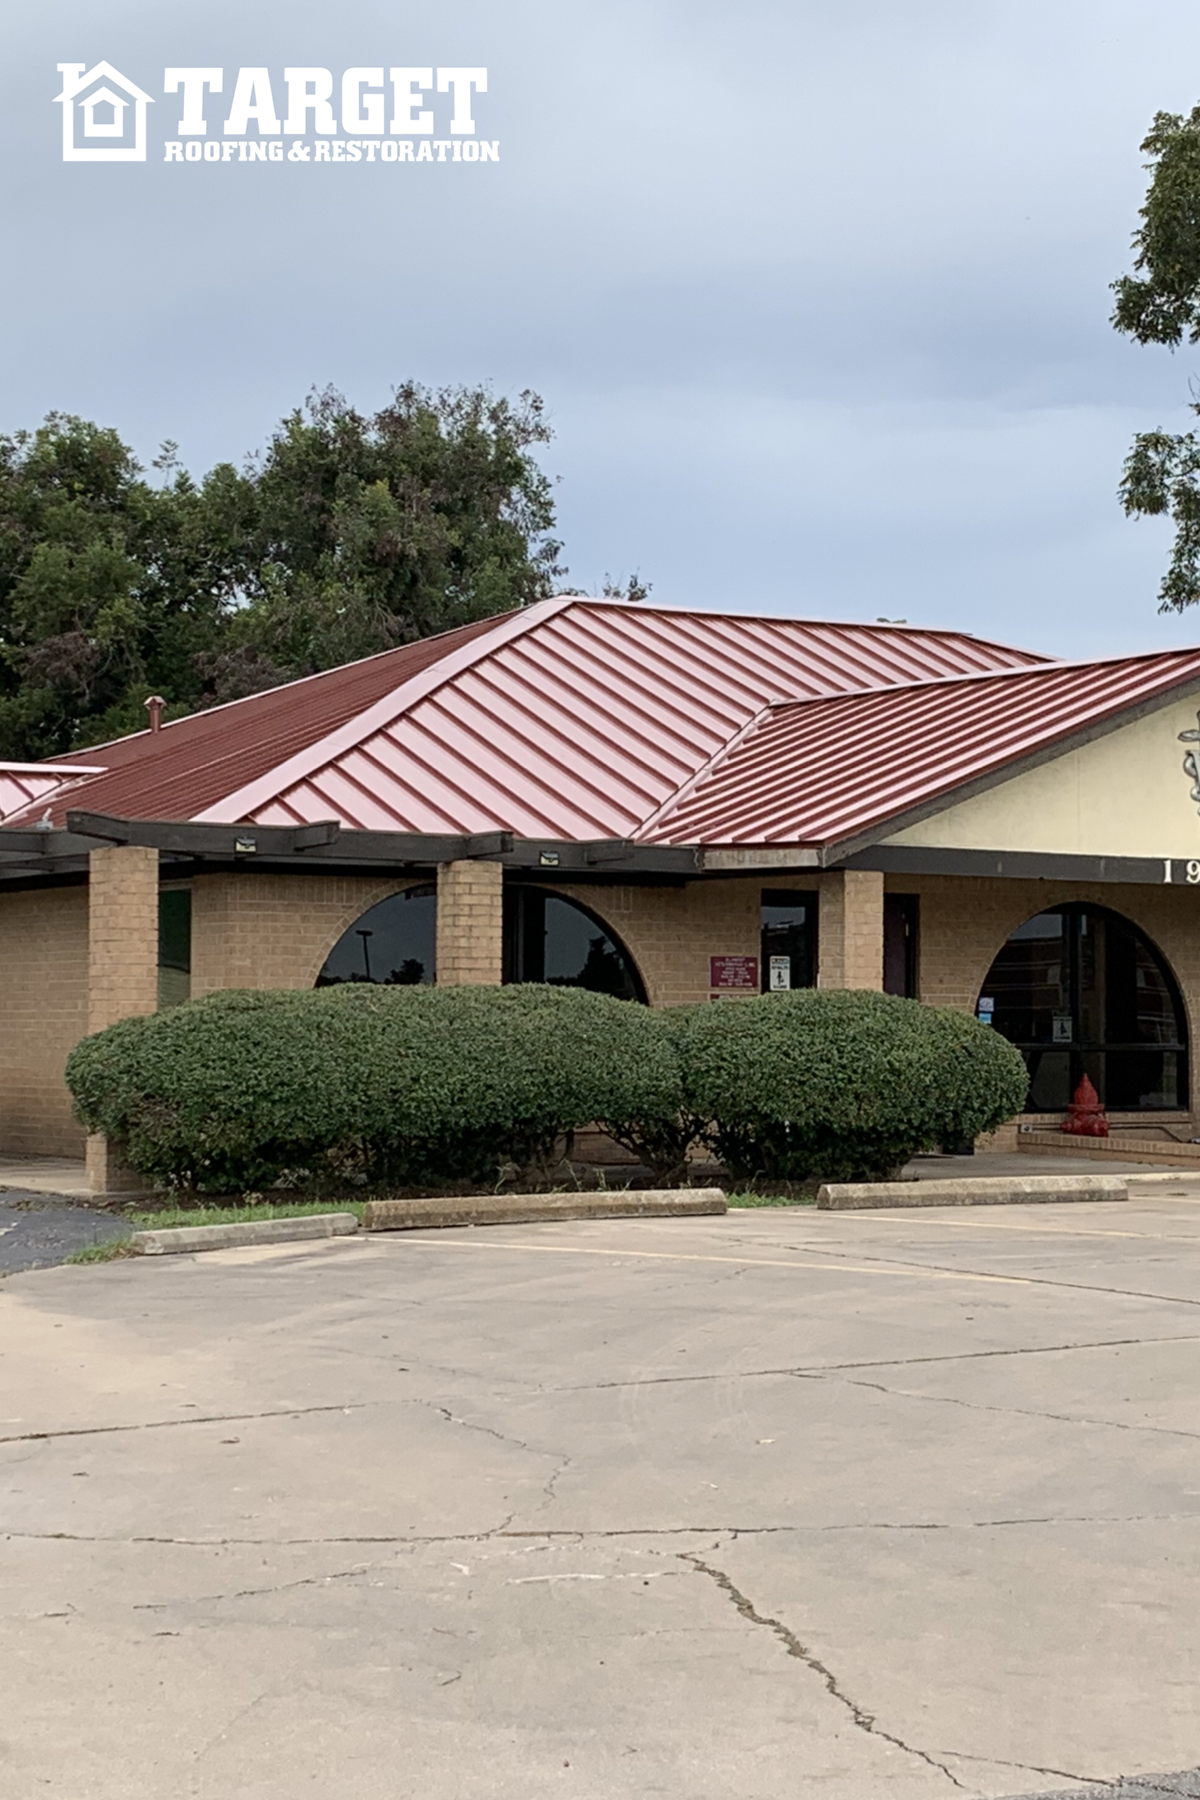 Finished Roof Gallery Target Roofing Residential And Commercial Roofing Services Houston And S In 2020 Metal Roof Commercial Roofing Roofing